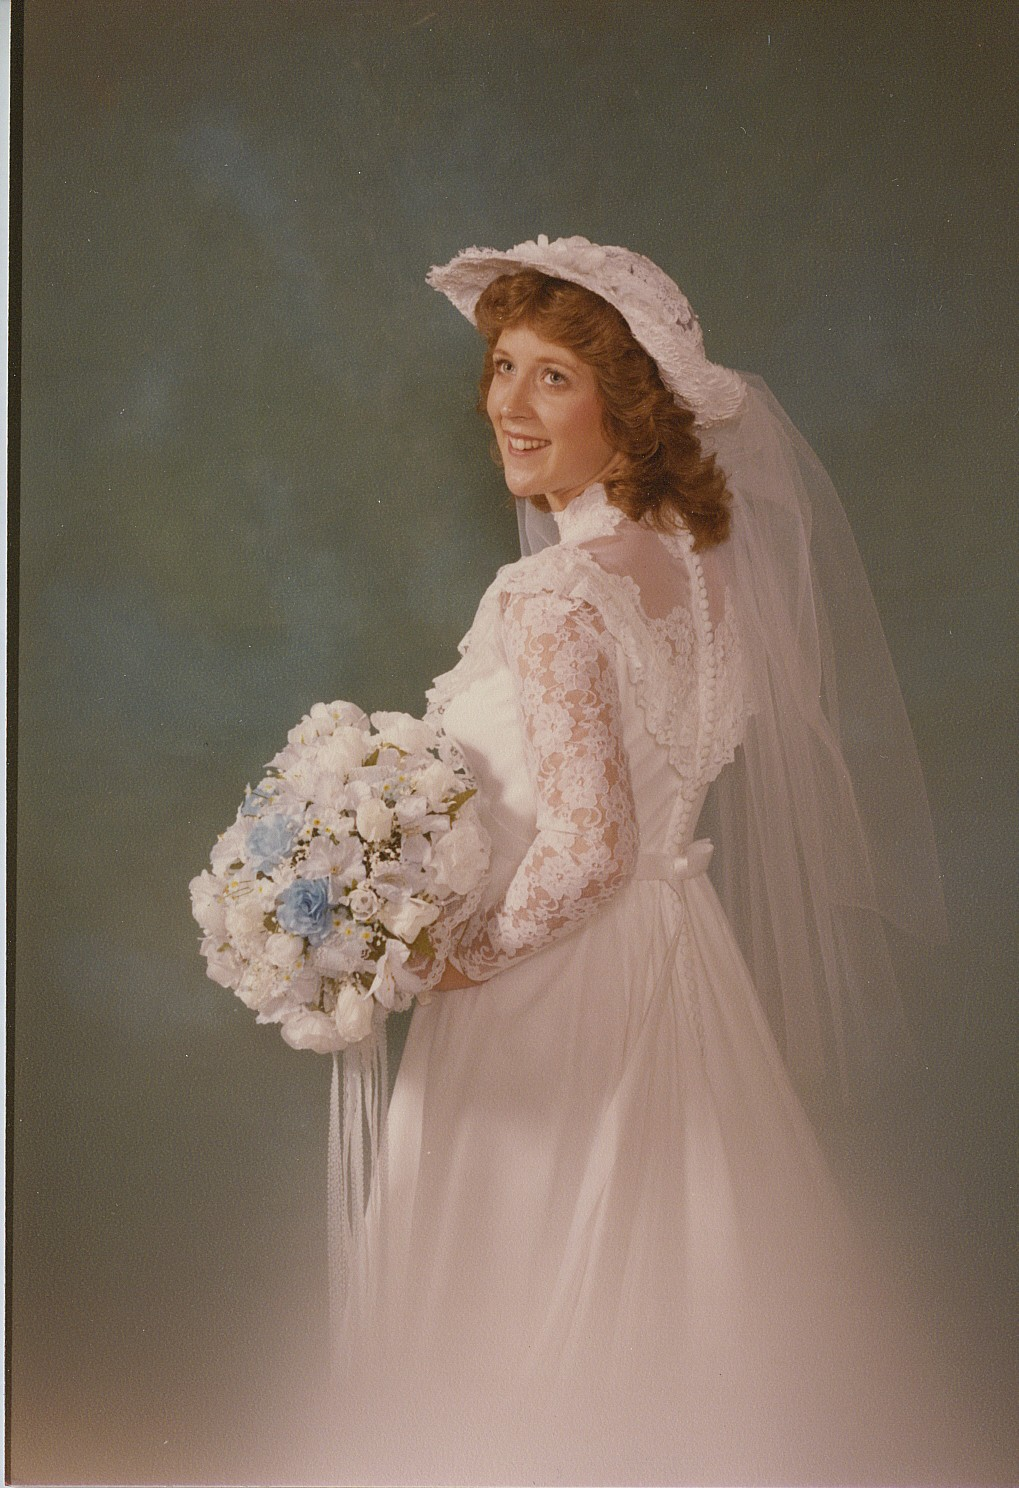 moms wedding dress mom's wedding dress undefined